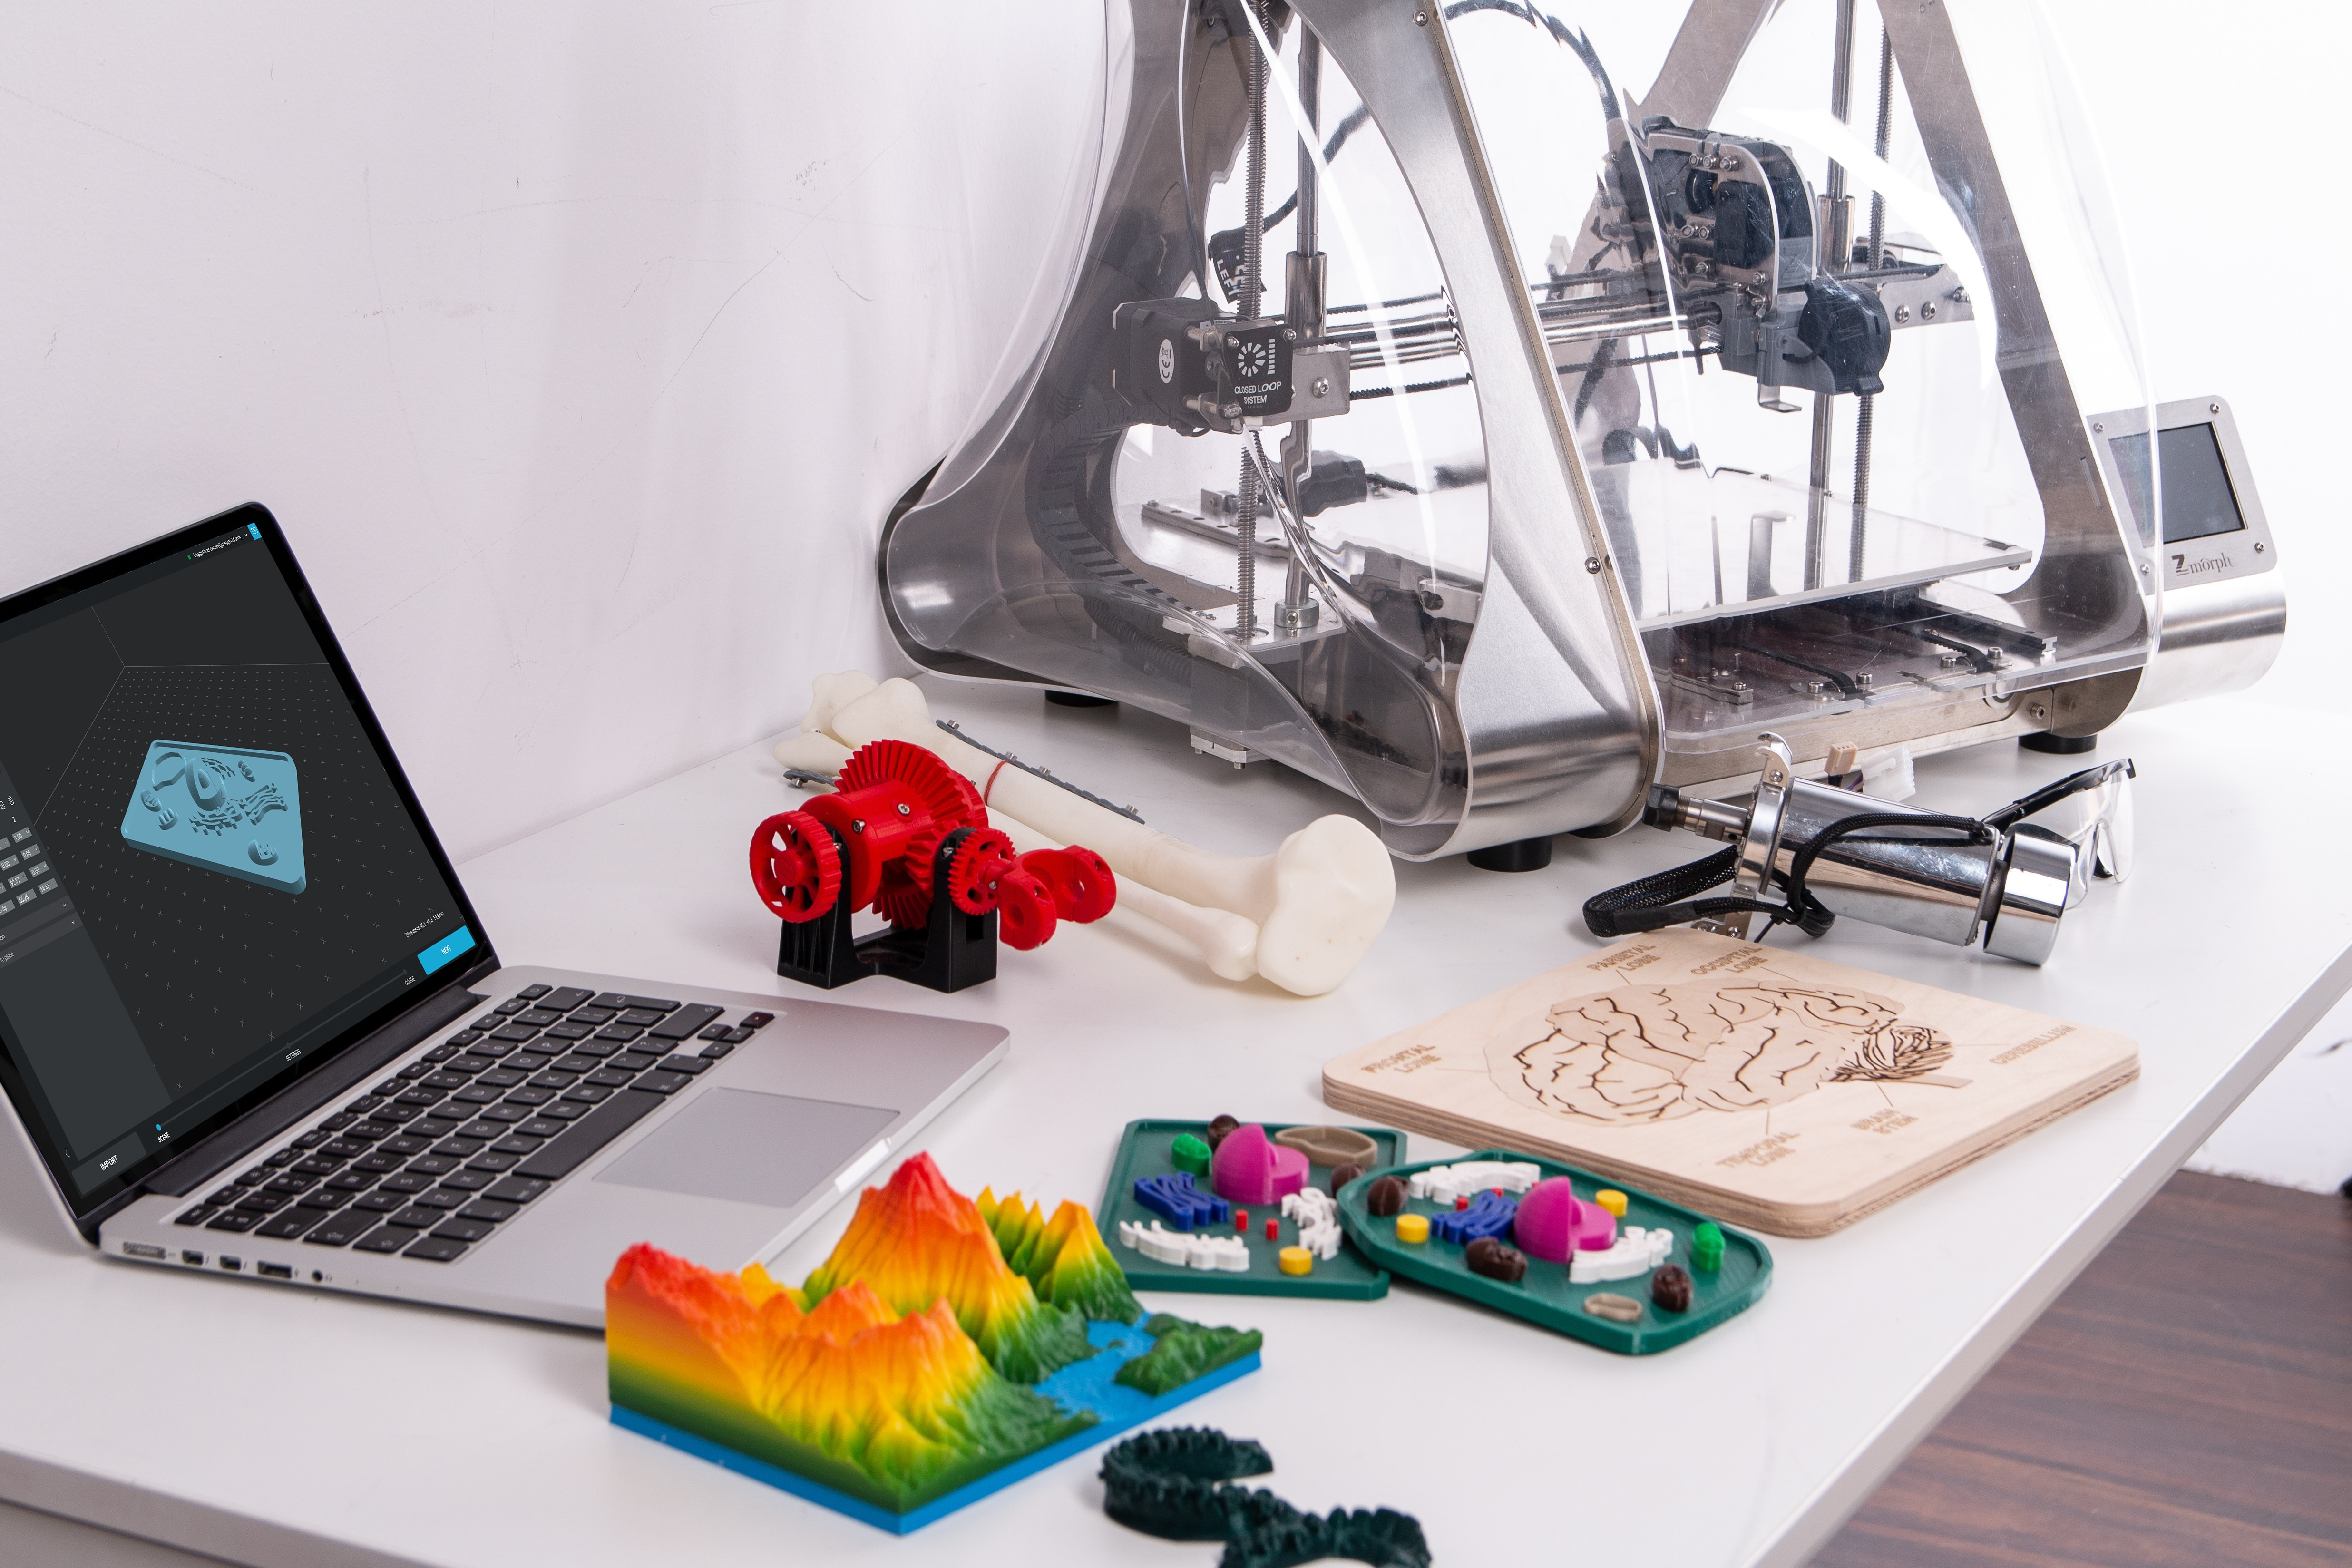 coworking_space_startups_3d_printing_machine